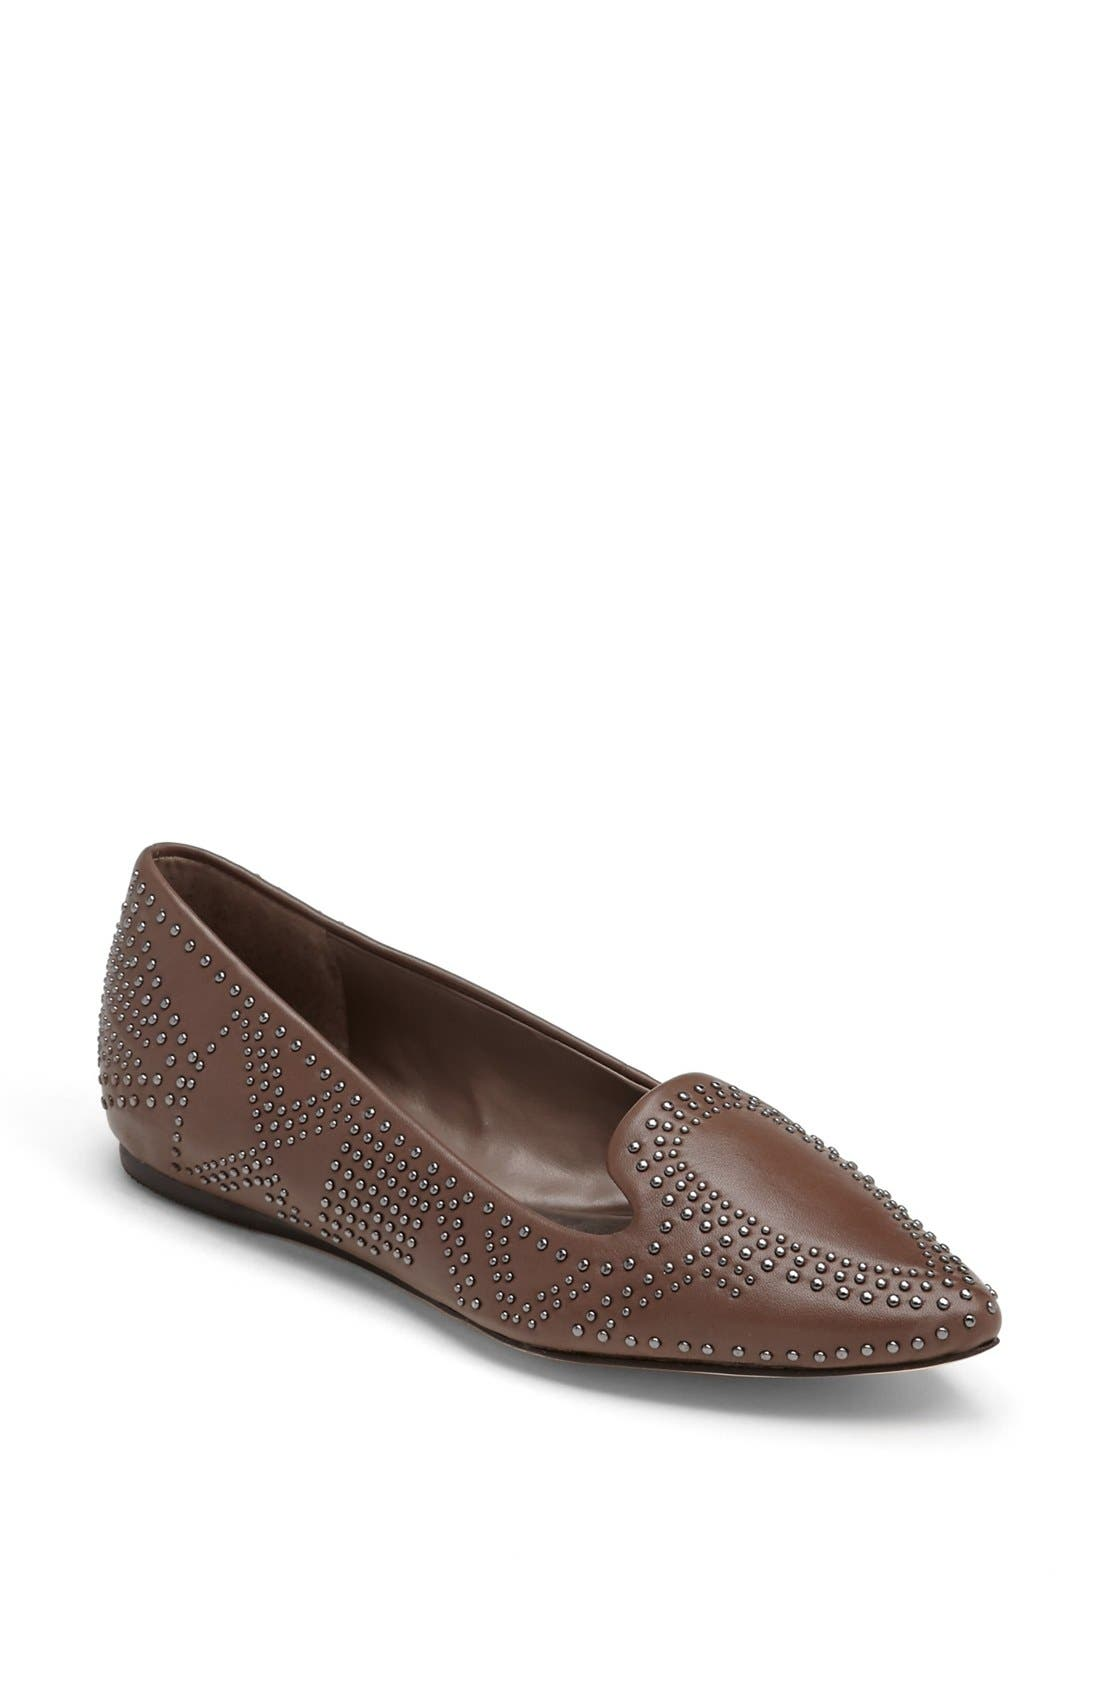 Alternate Image 1 Selected - BCBGMAXAZRIA 'Tille' Loafer